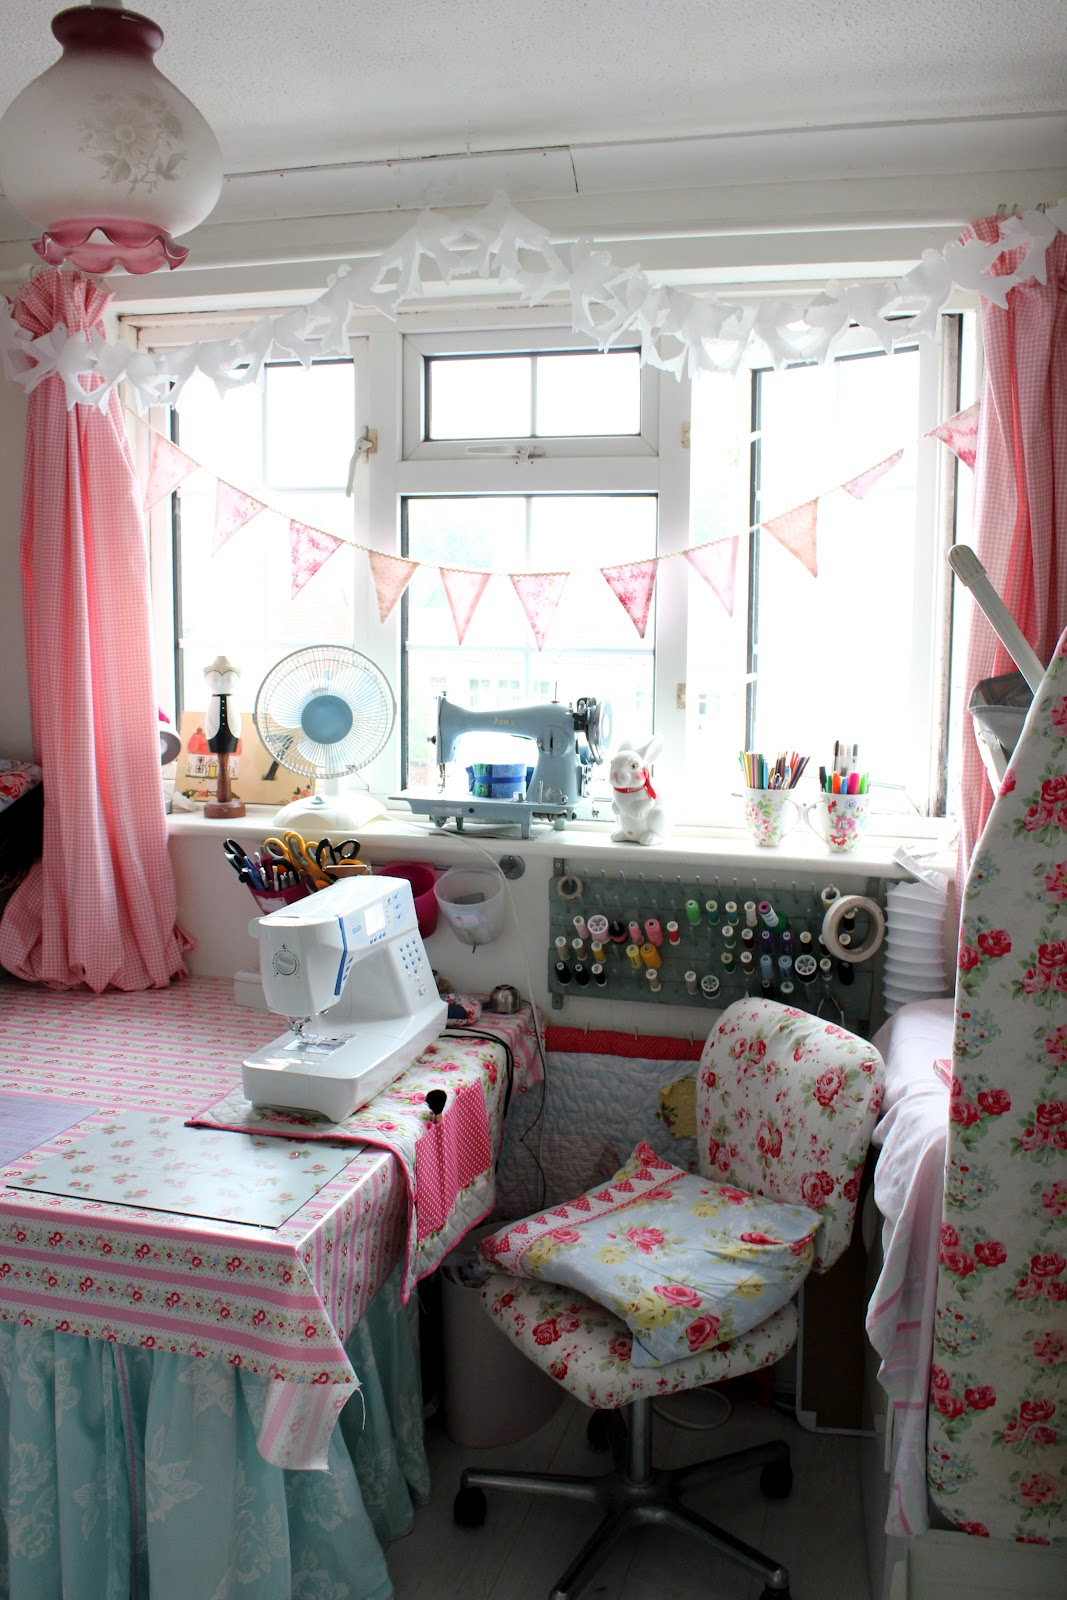 Sewing Room Designs: ShabbyChicSarah: Sewing Room Tour?